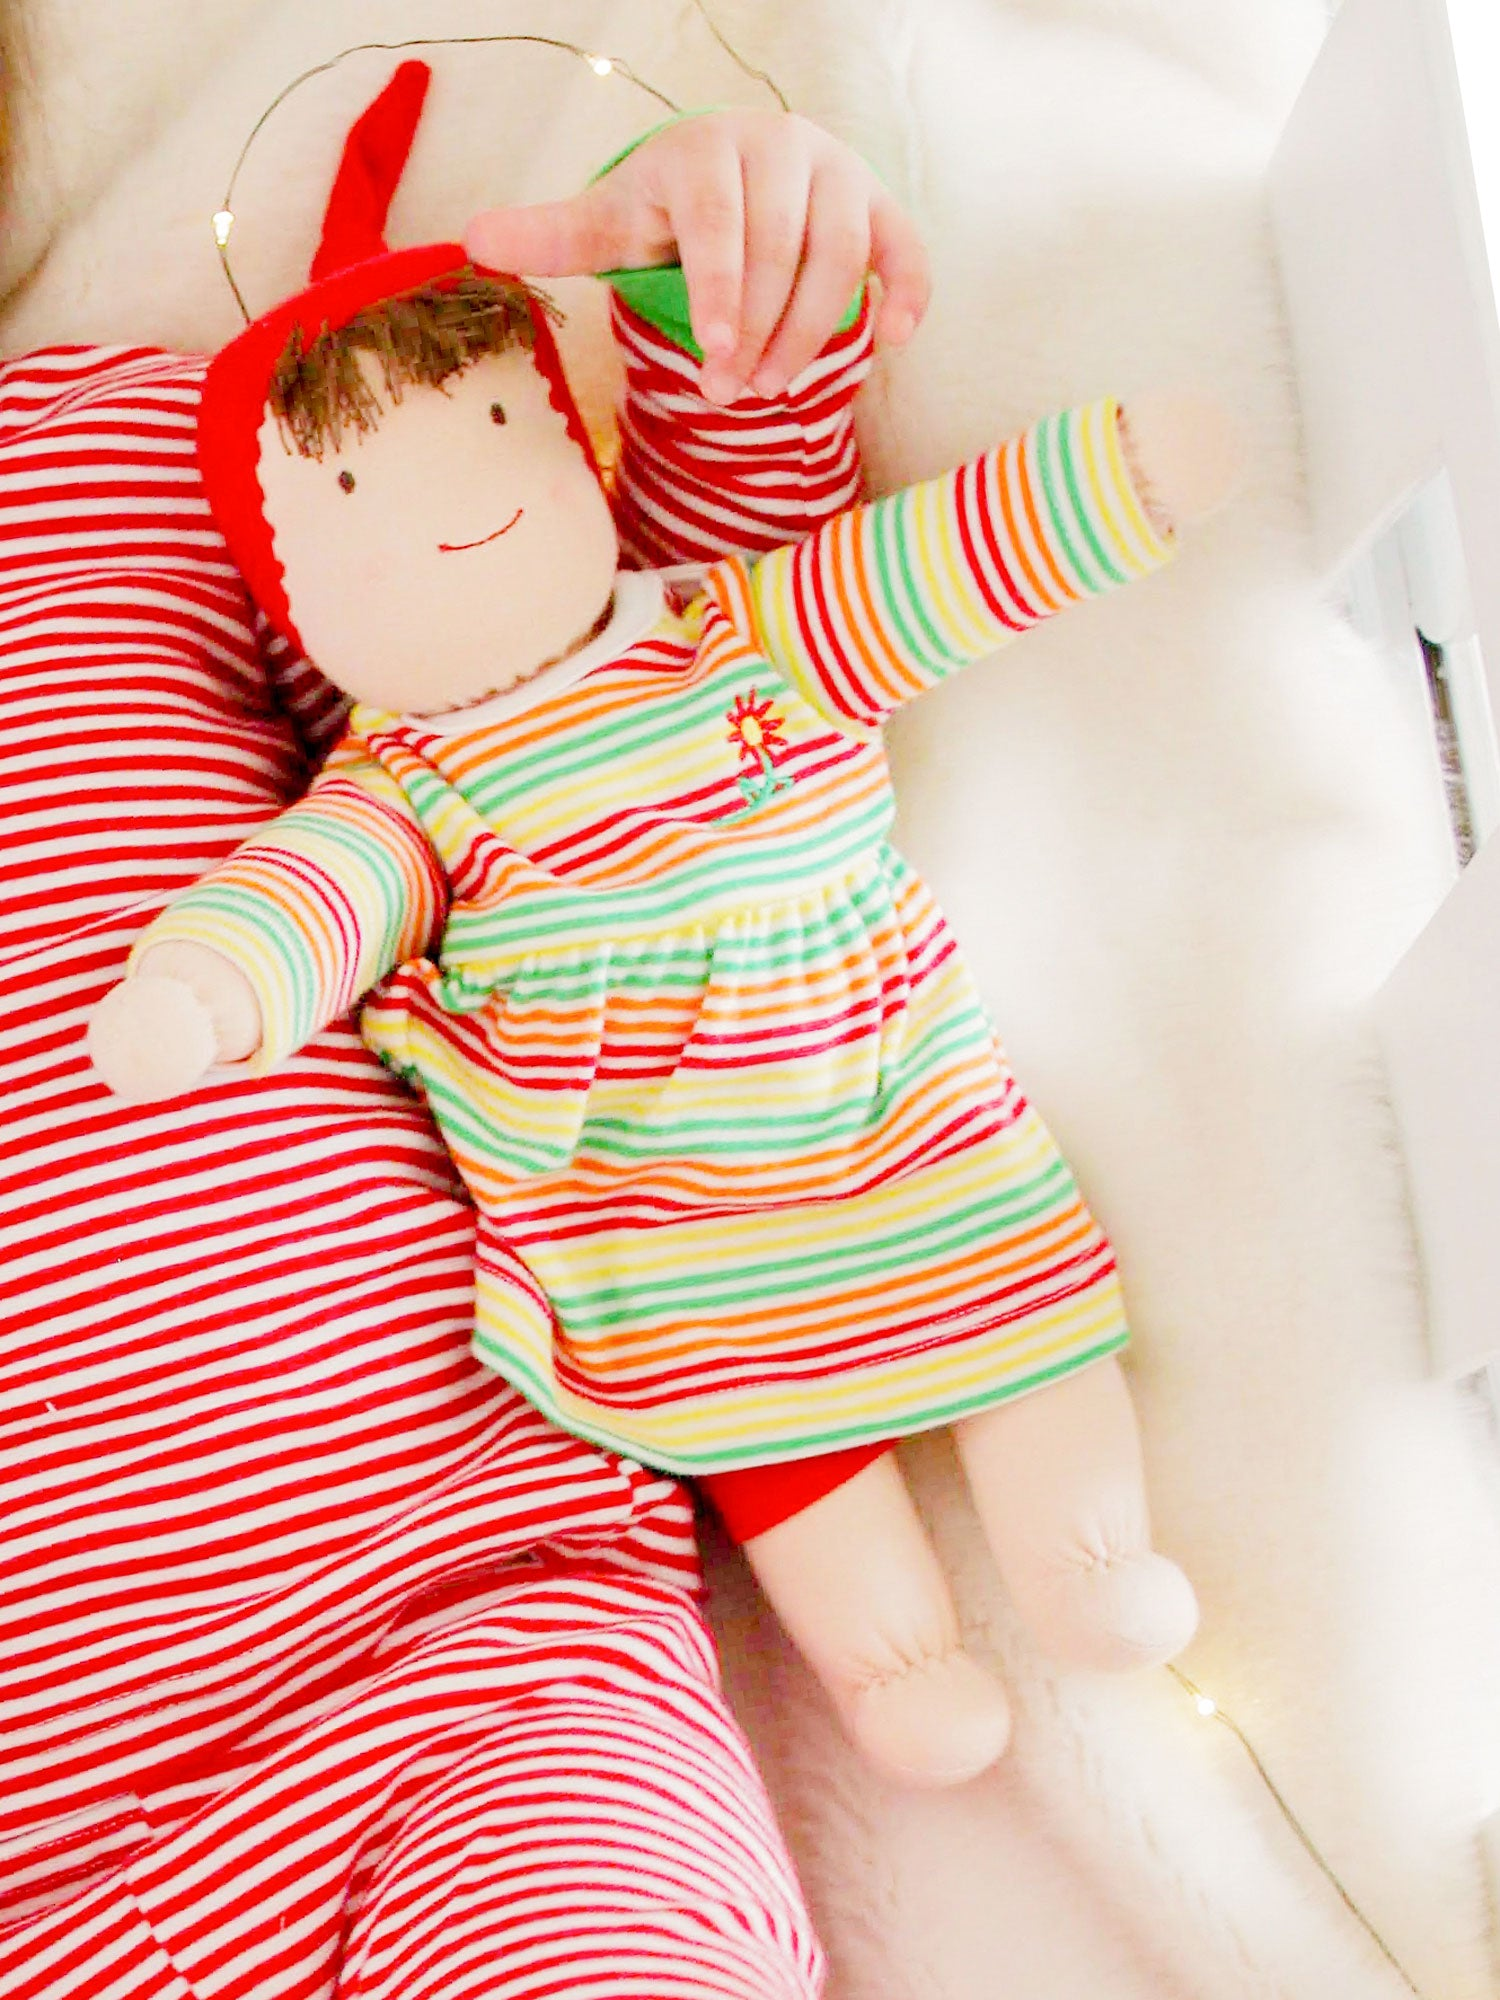 Jill Dress Up Doll - Multicolor Stripe